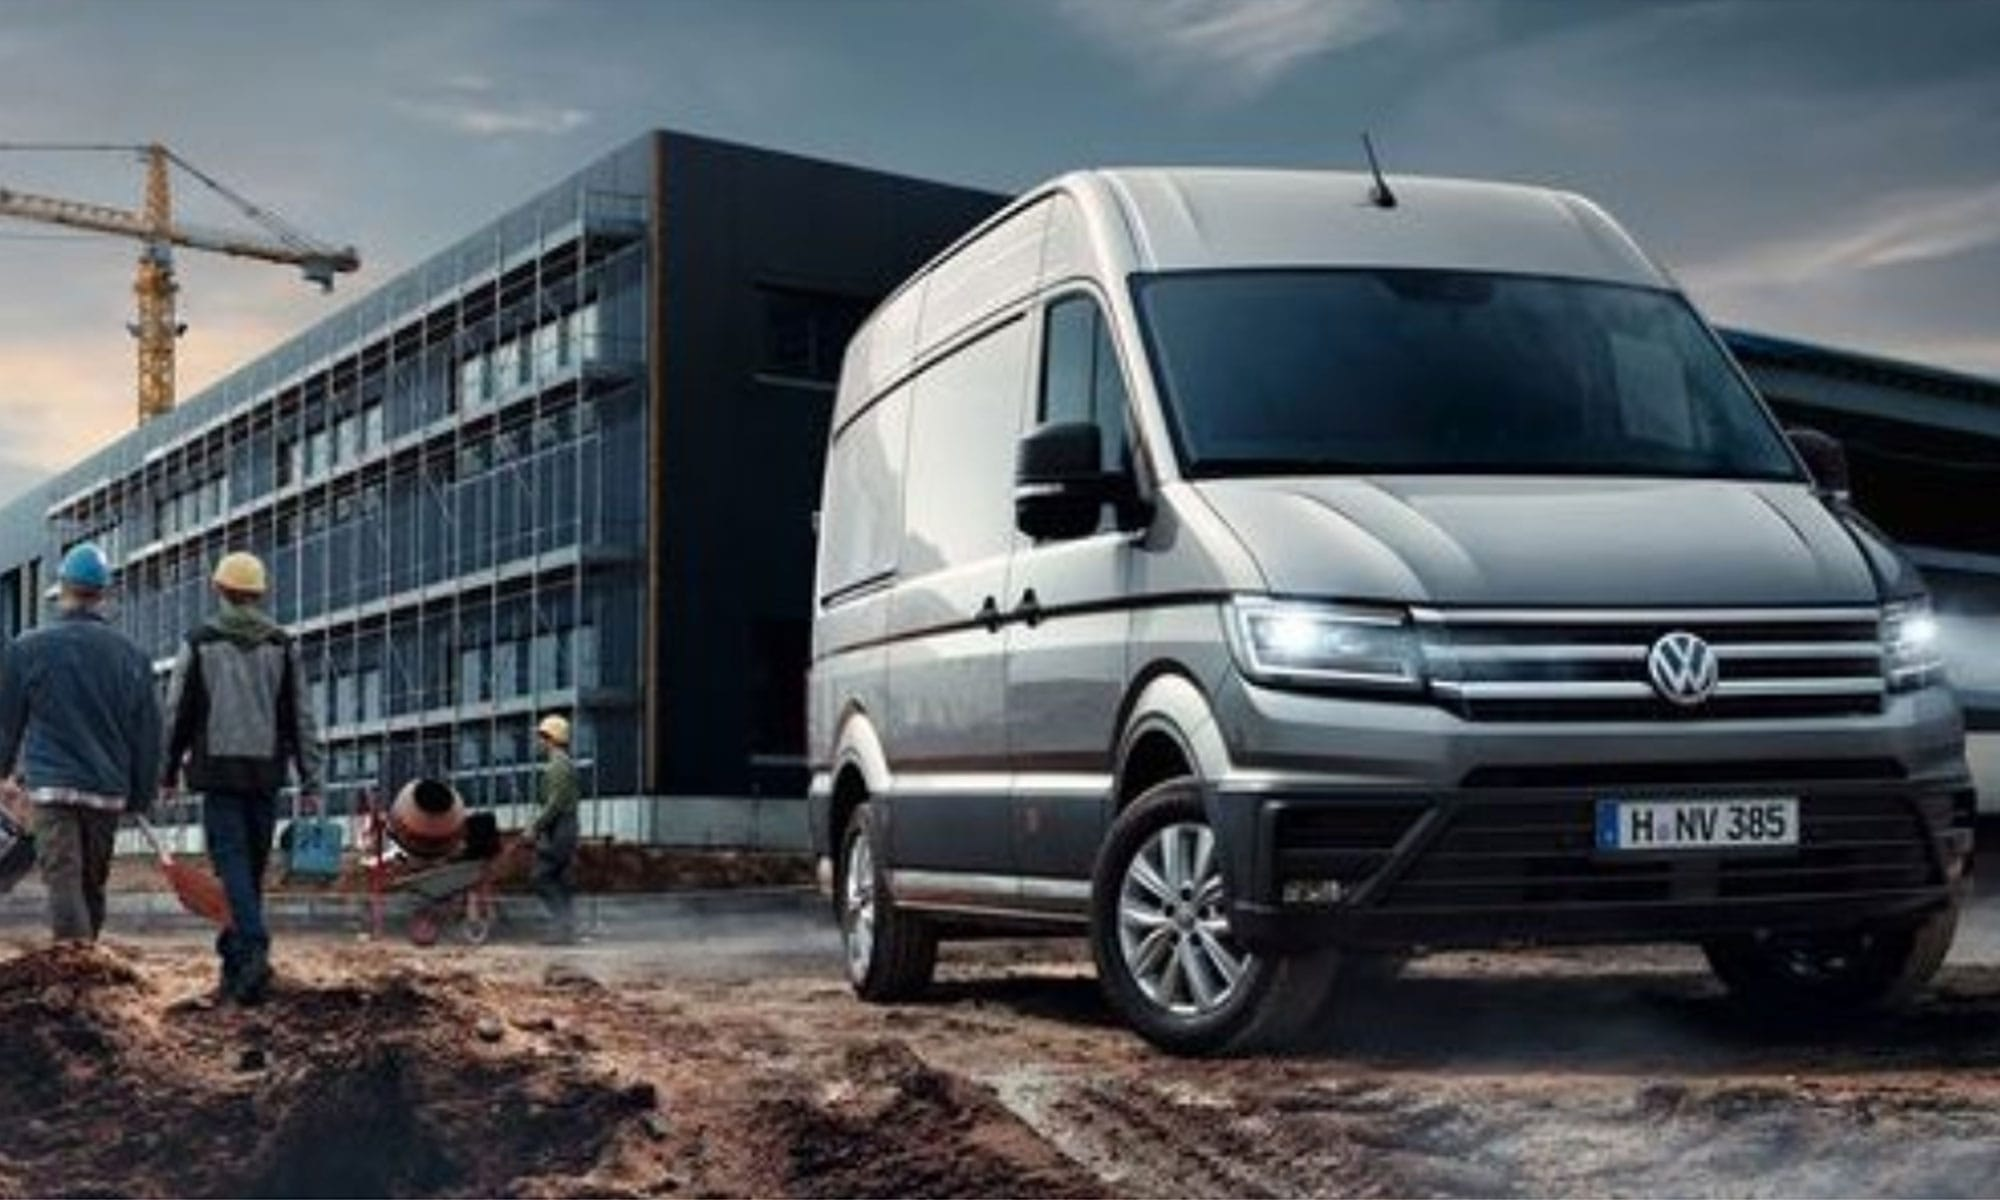 Location utilitaire camion volkswagen crafter L4 H3.